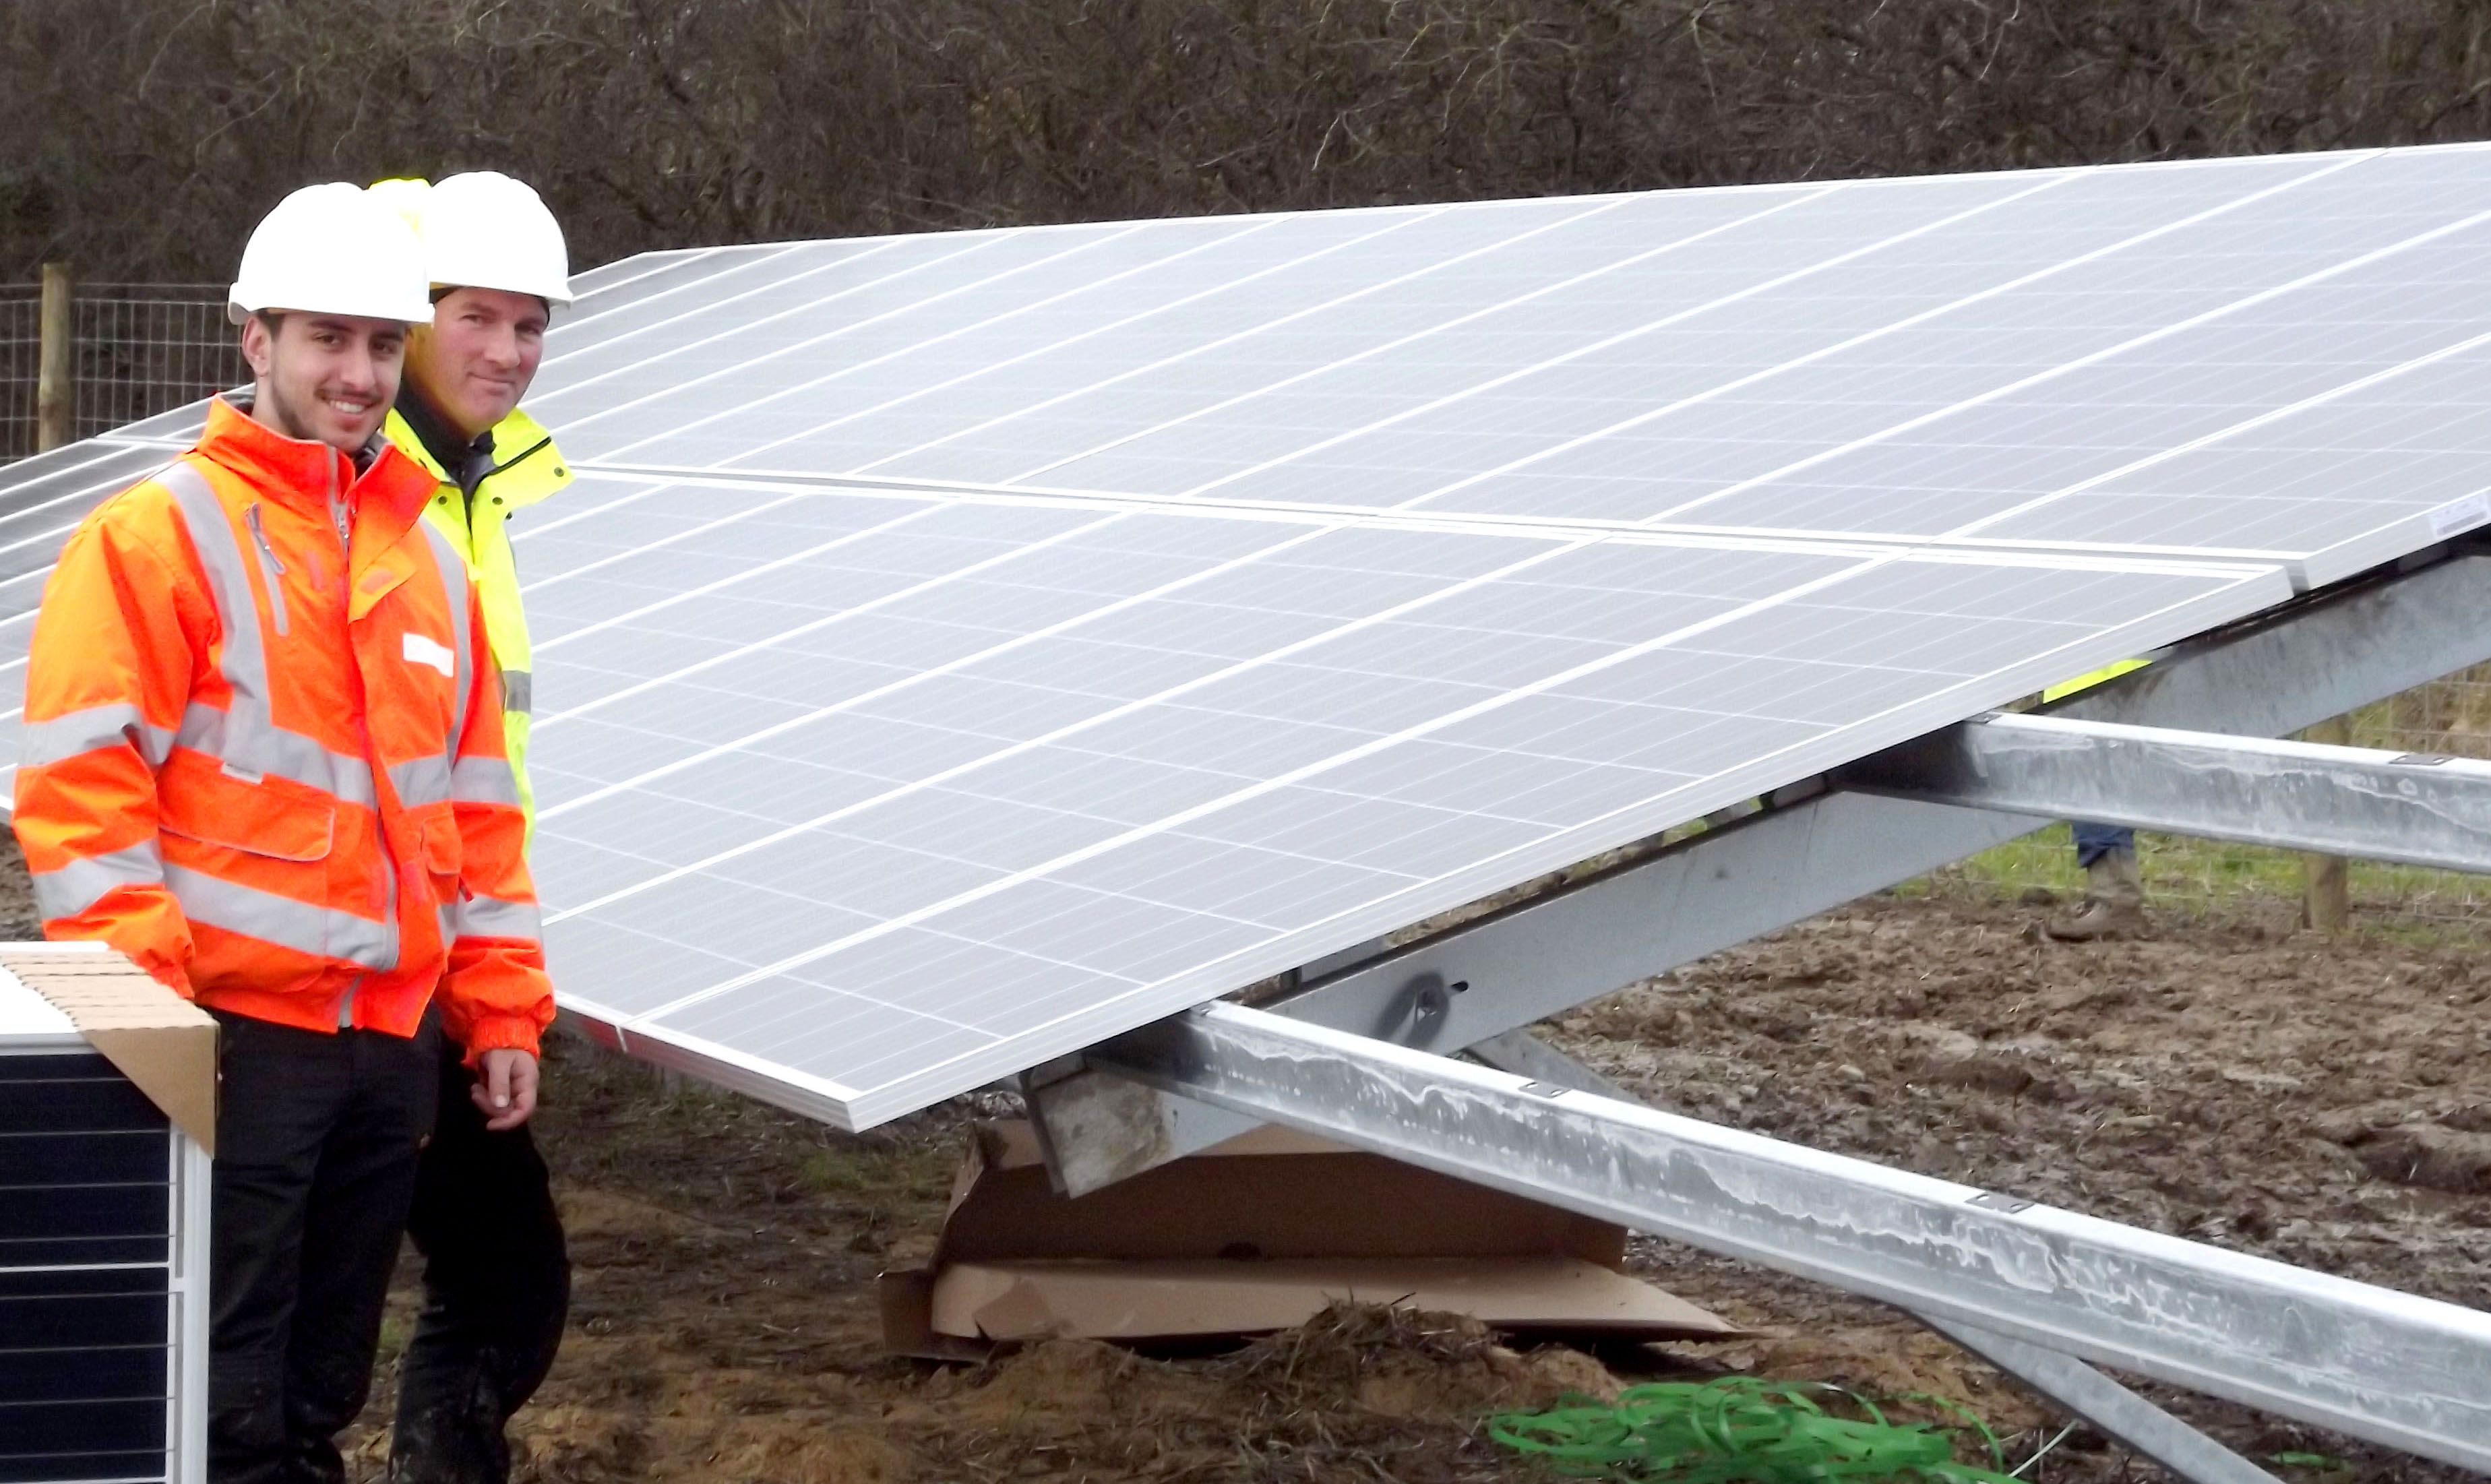 Aycliffe's Solar Energy Farm Nearing Completion